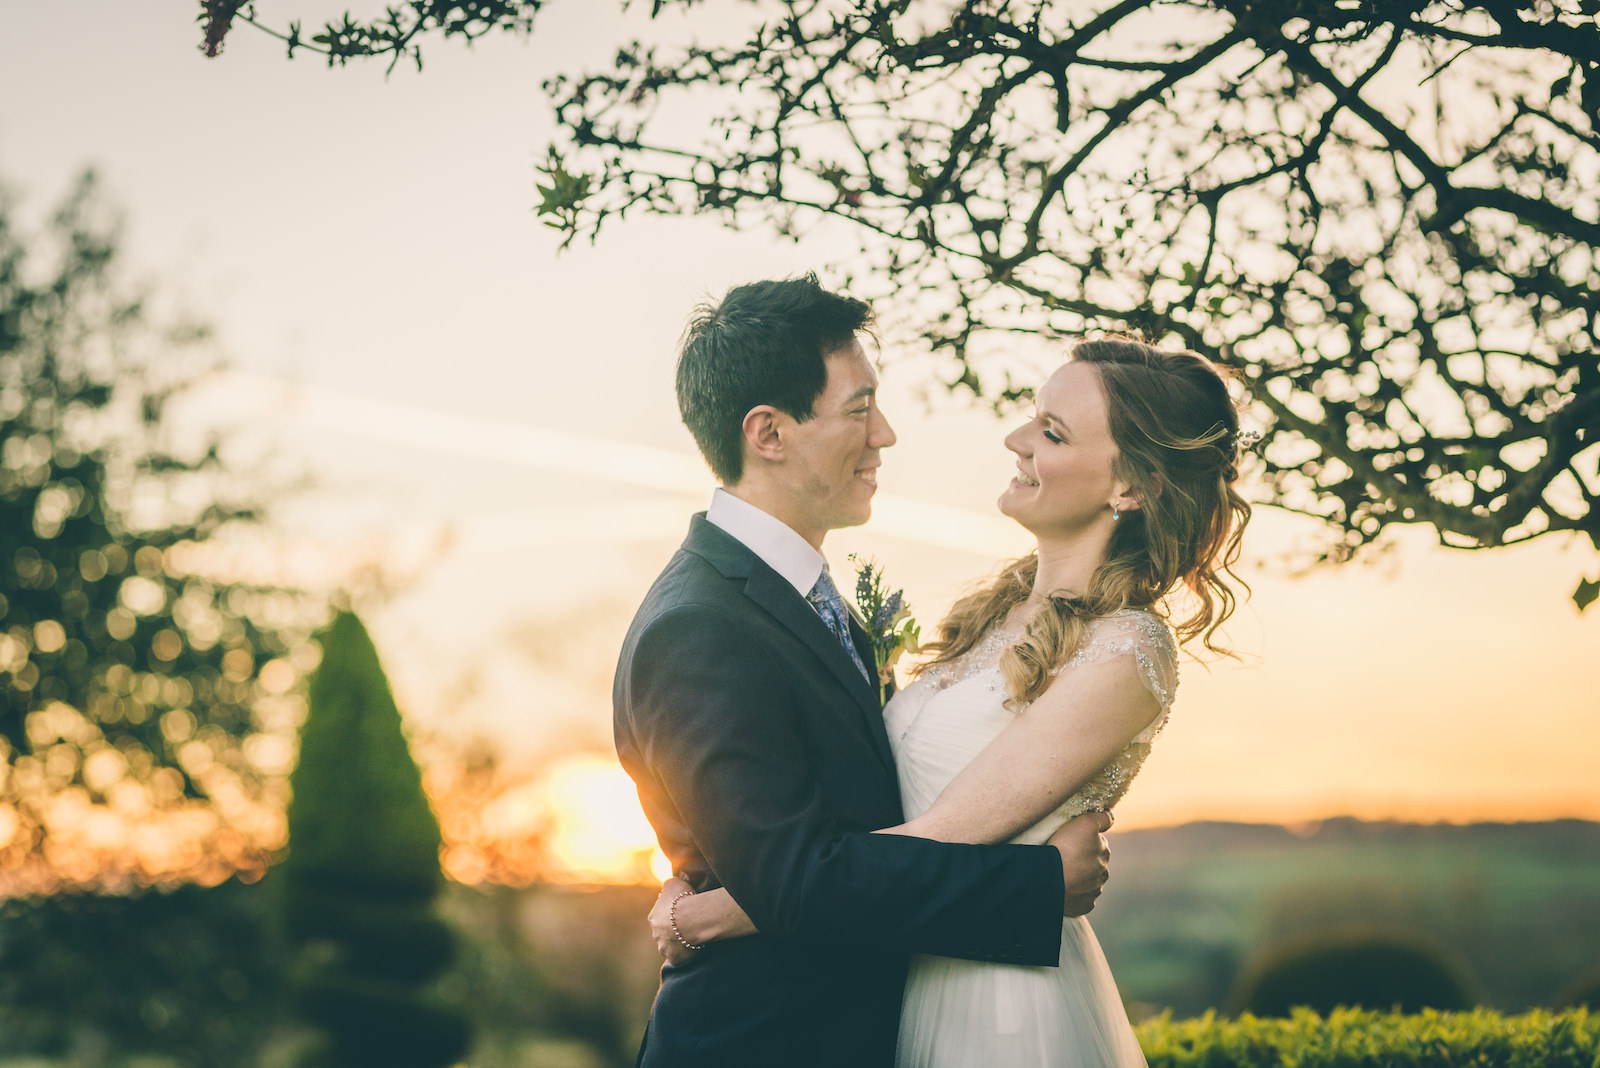 Rob Tarren Cotswold Wedding Photography – Part Three